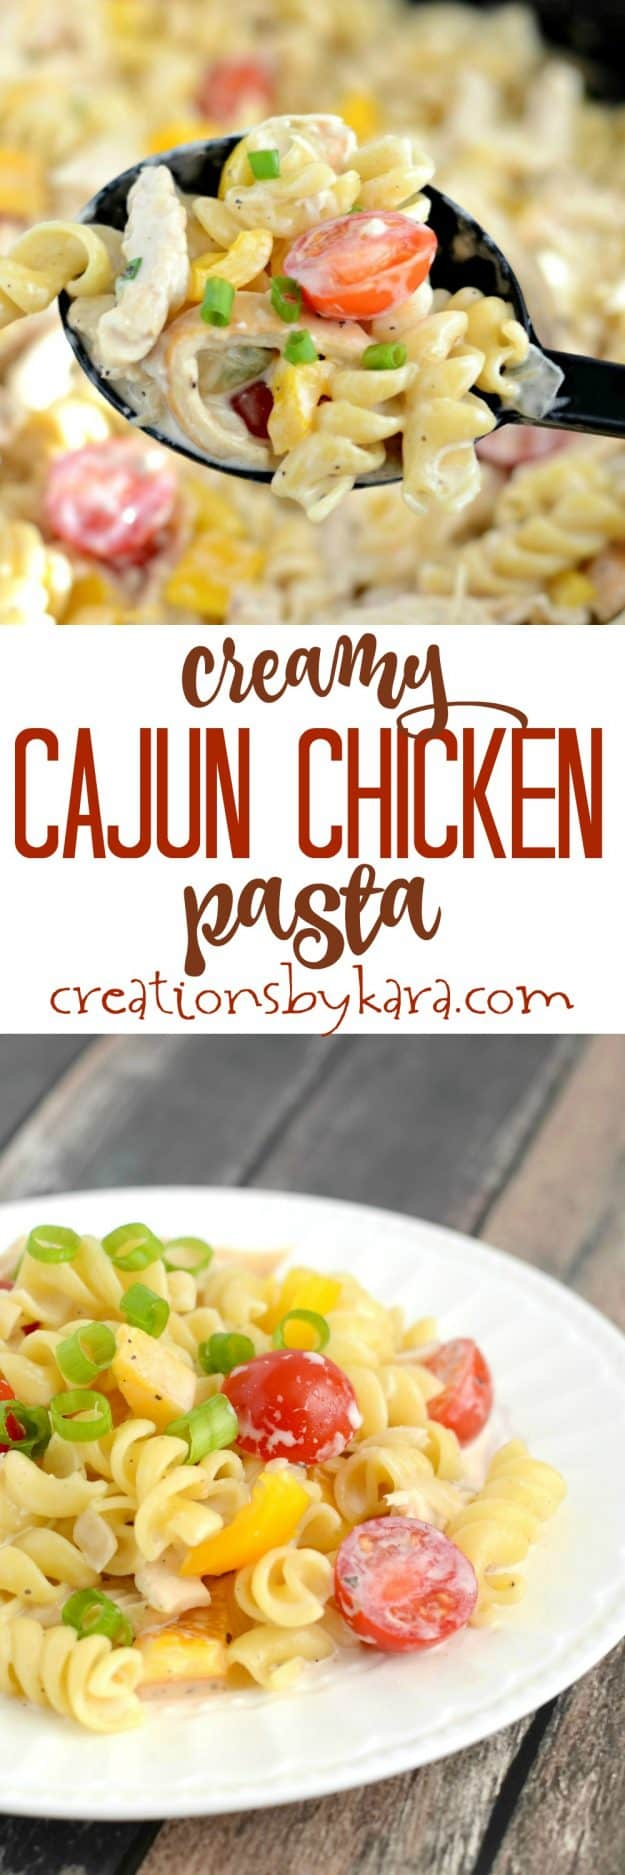 Recipe for Creamy Cajun Chicken Pasta. If you love alfredo, give this spicy pasta a try. It is incredible, and easy to make!